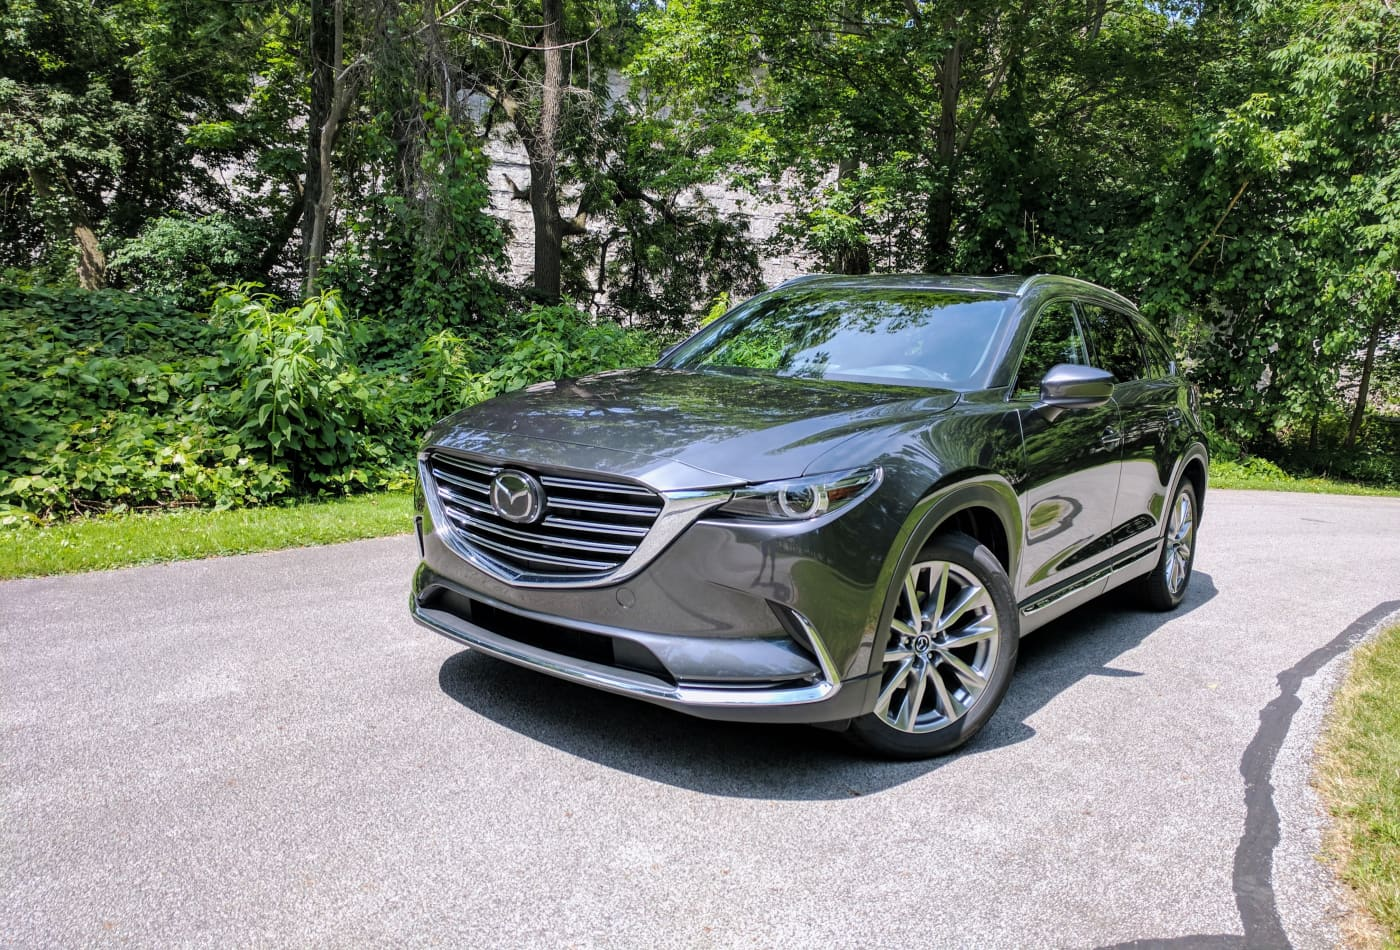 Mazda Cx 9 Review Too Many Sacrifices In This Three Row Suv